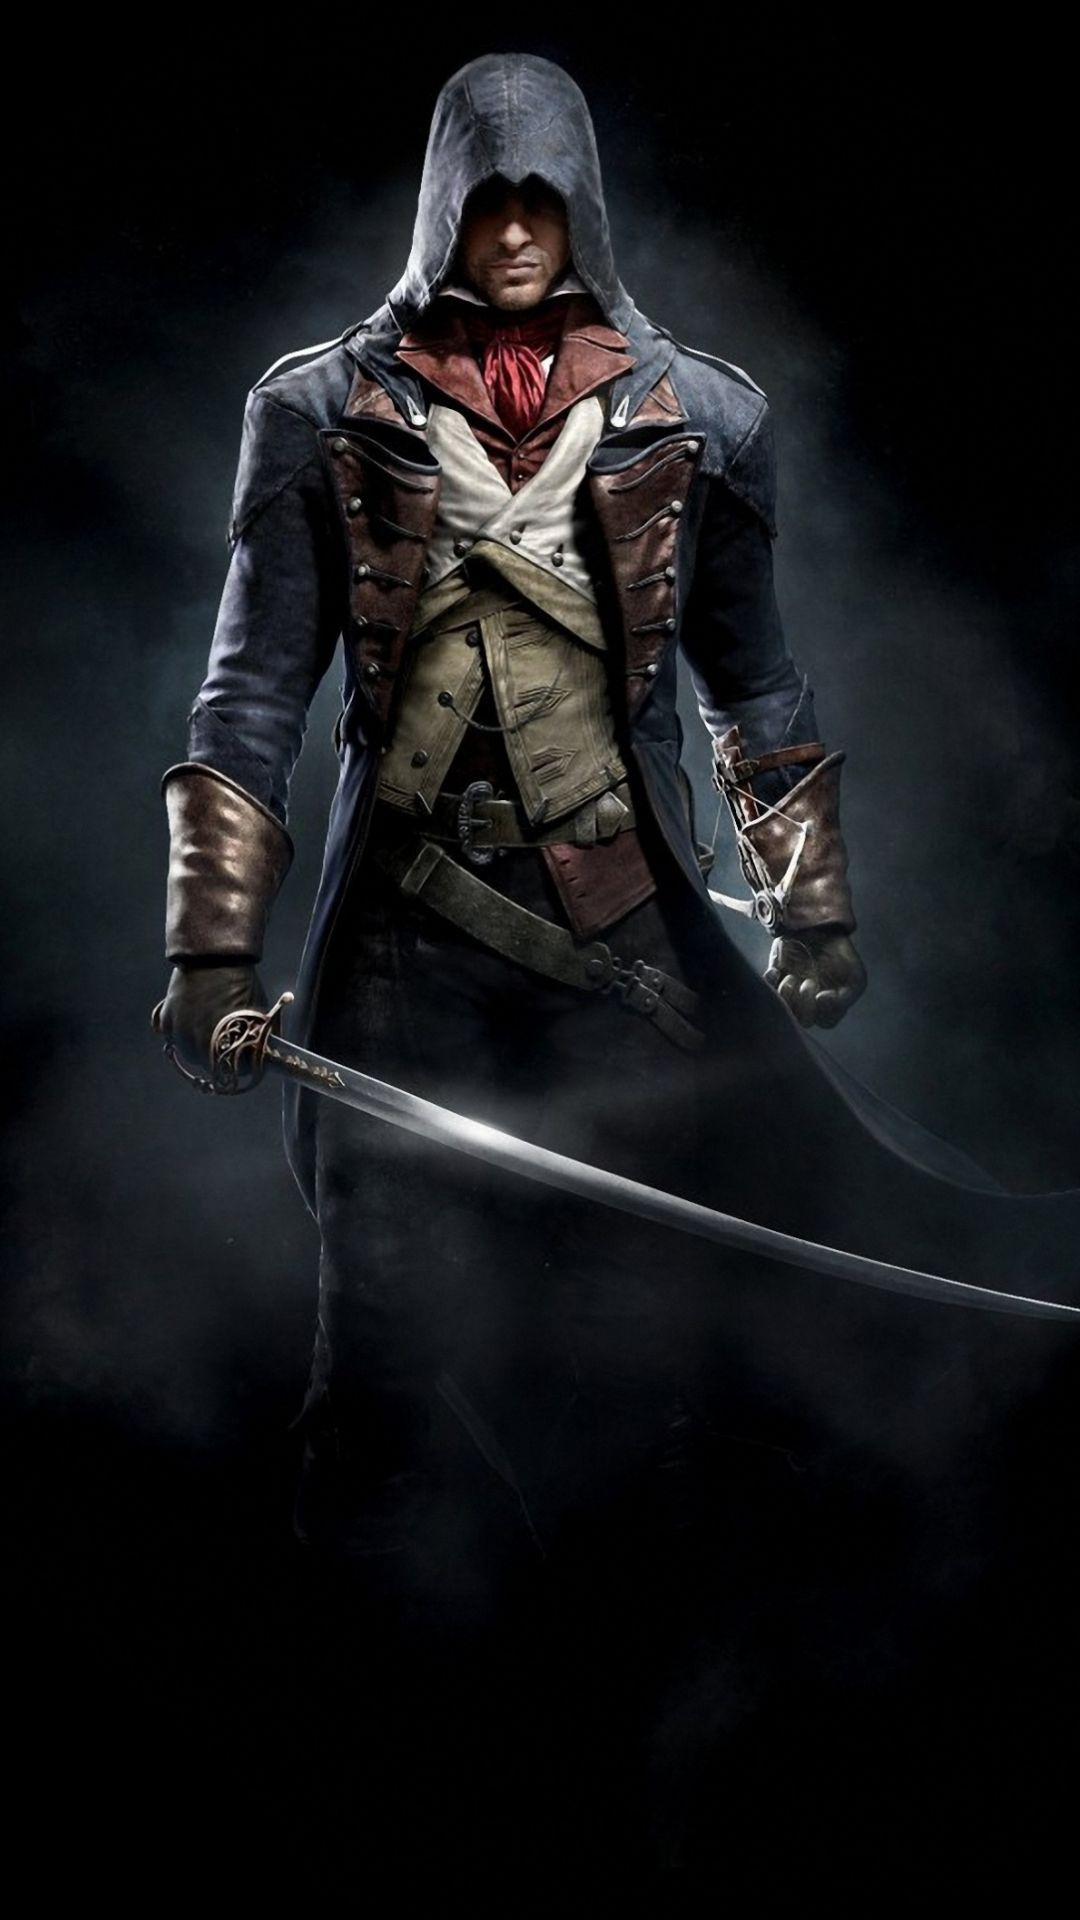 Assassins Creed Hd Iphone Wallpaper Hupages Download Iphone Wallpapers Assassin S Creed Wallpaper Assassin S Creed Hd Assassins Creed Unity Arno